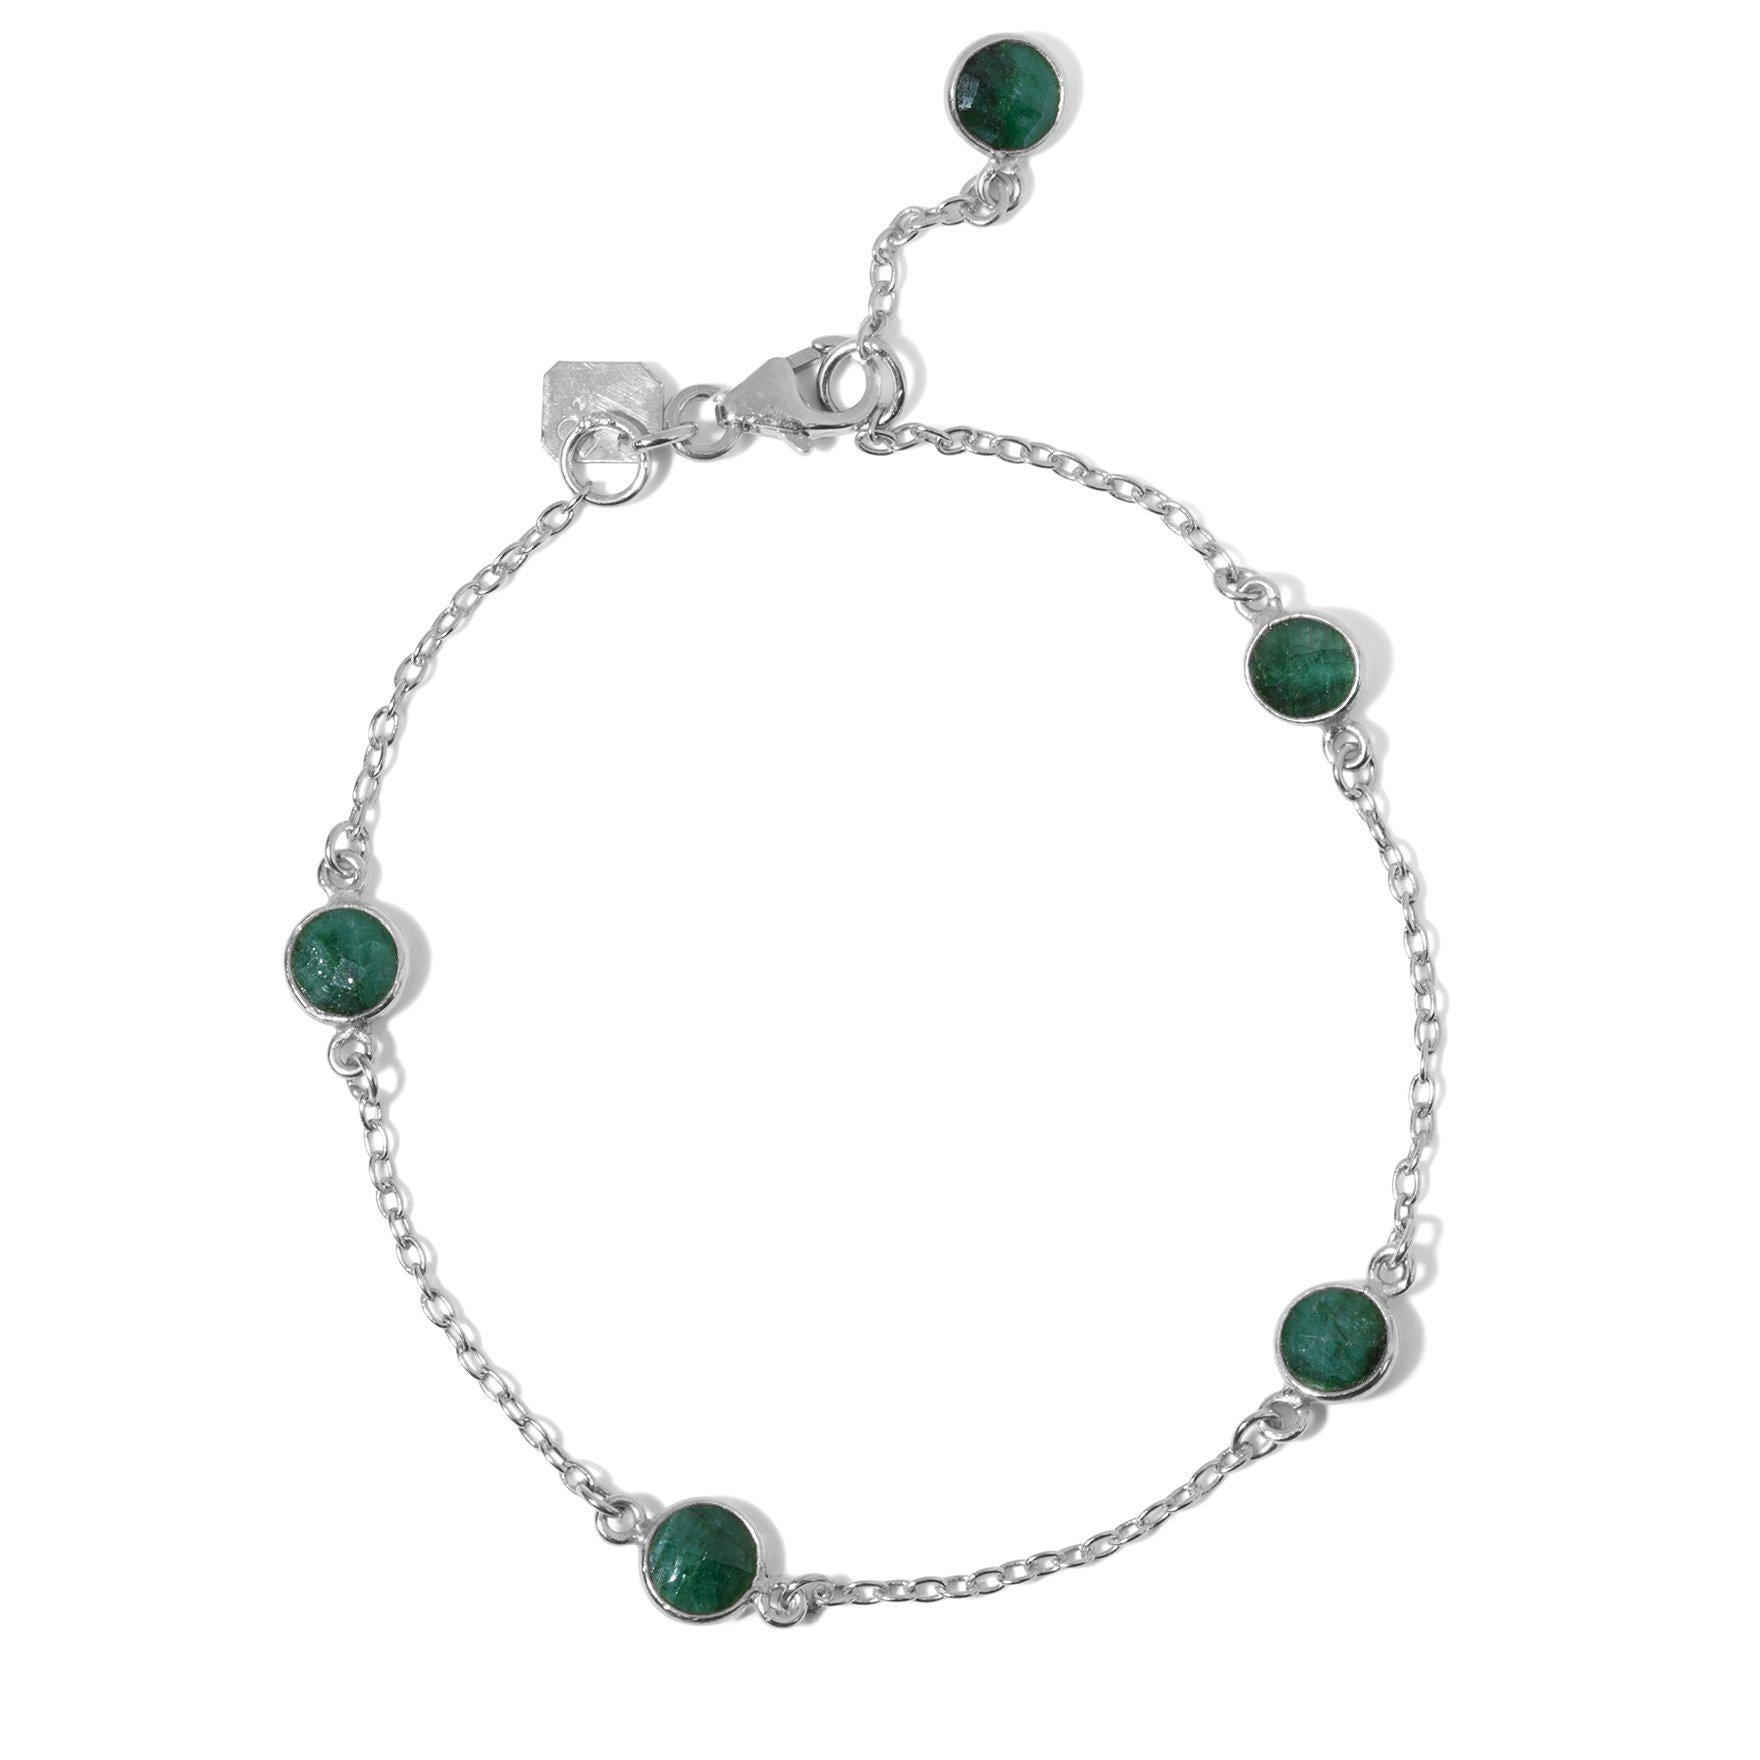 The Five Stoned Bracelet in Silver